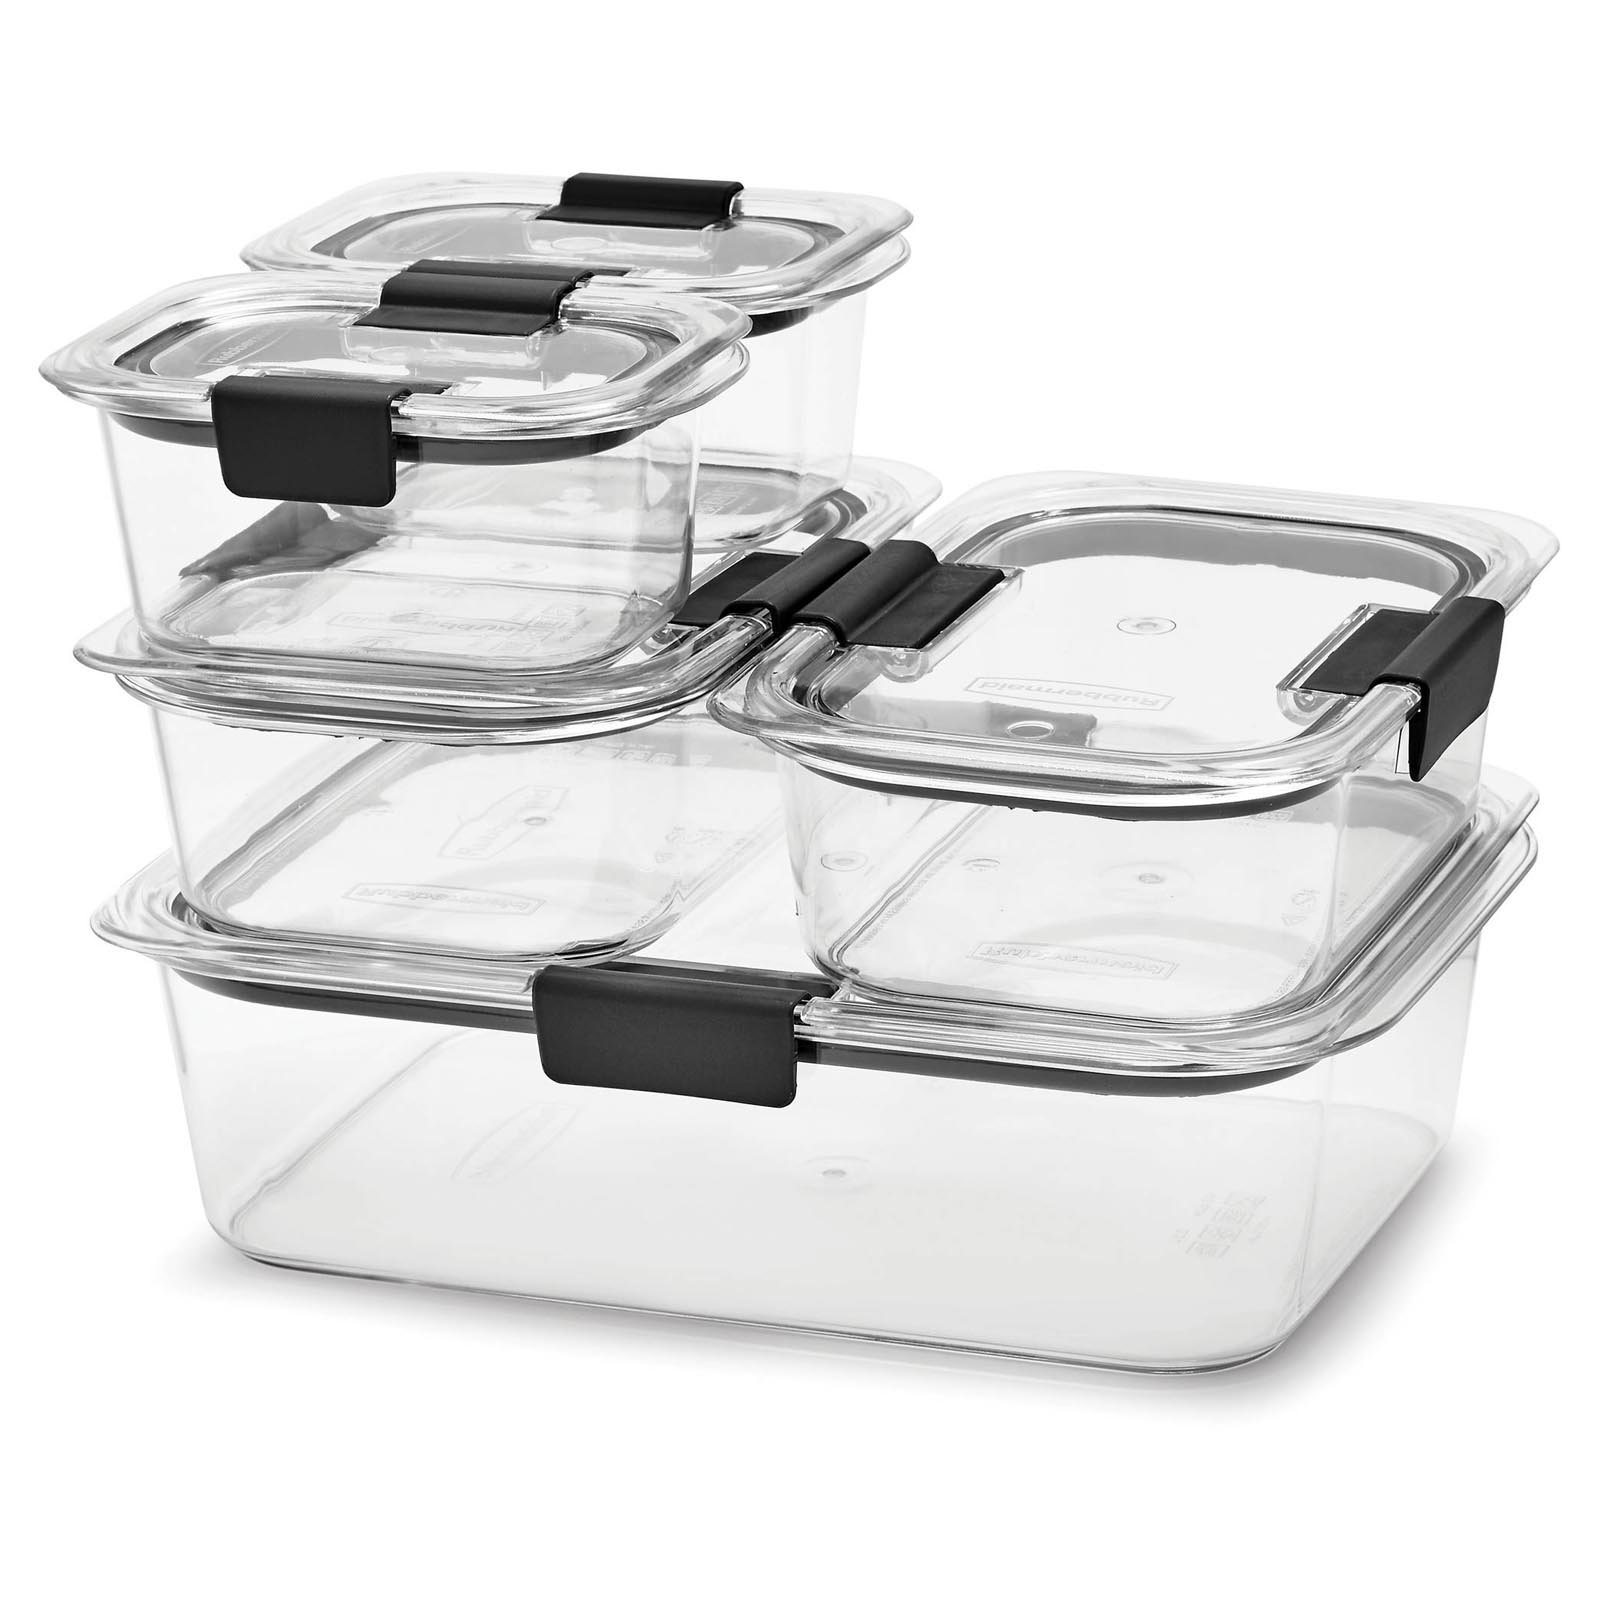 Rubbermaid Brilliance Food Storage Container 10 Piece Set Clear